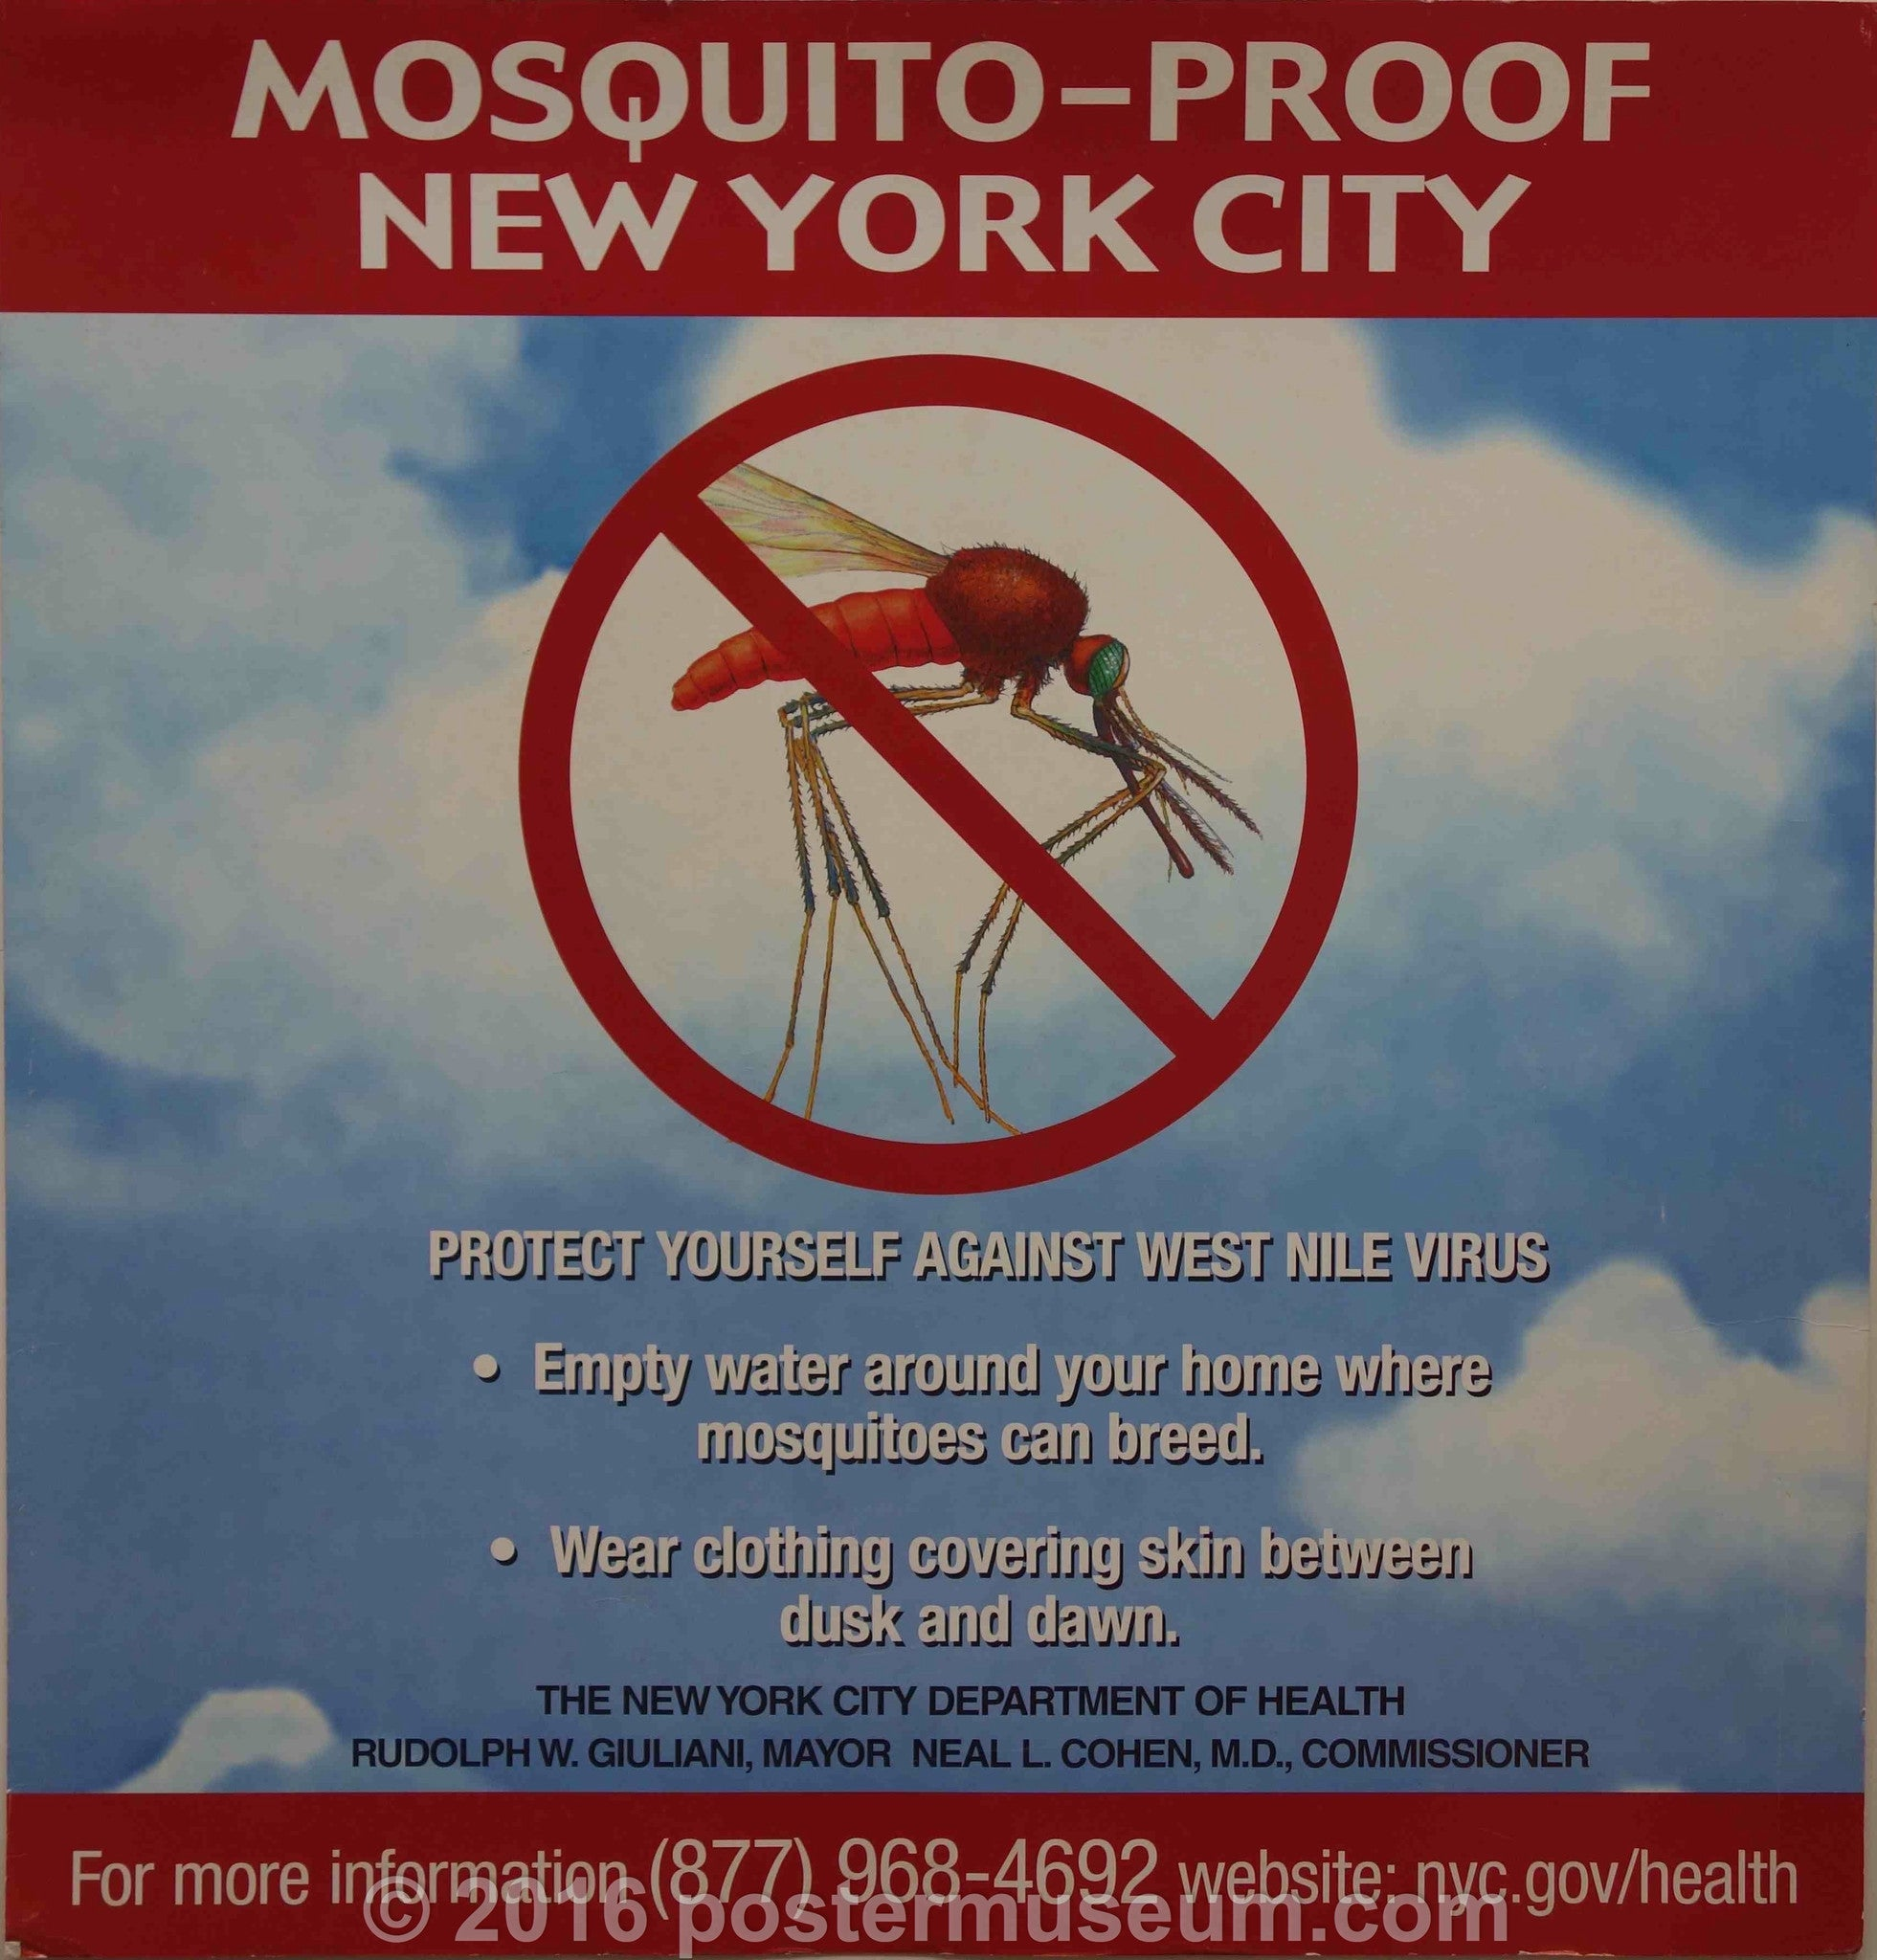 Mosquito-proof New York City